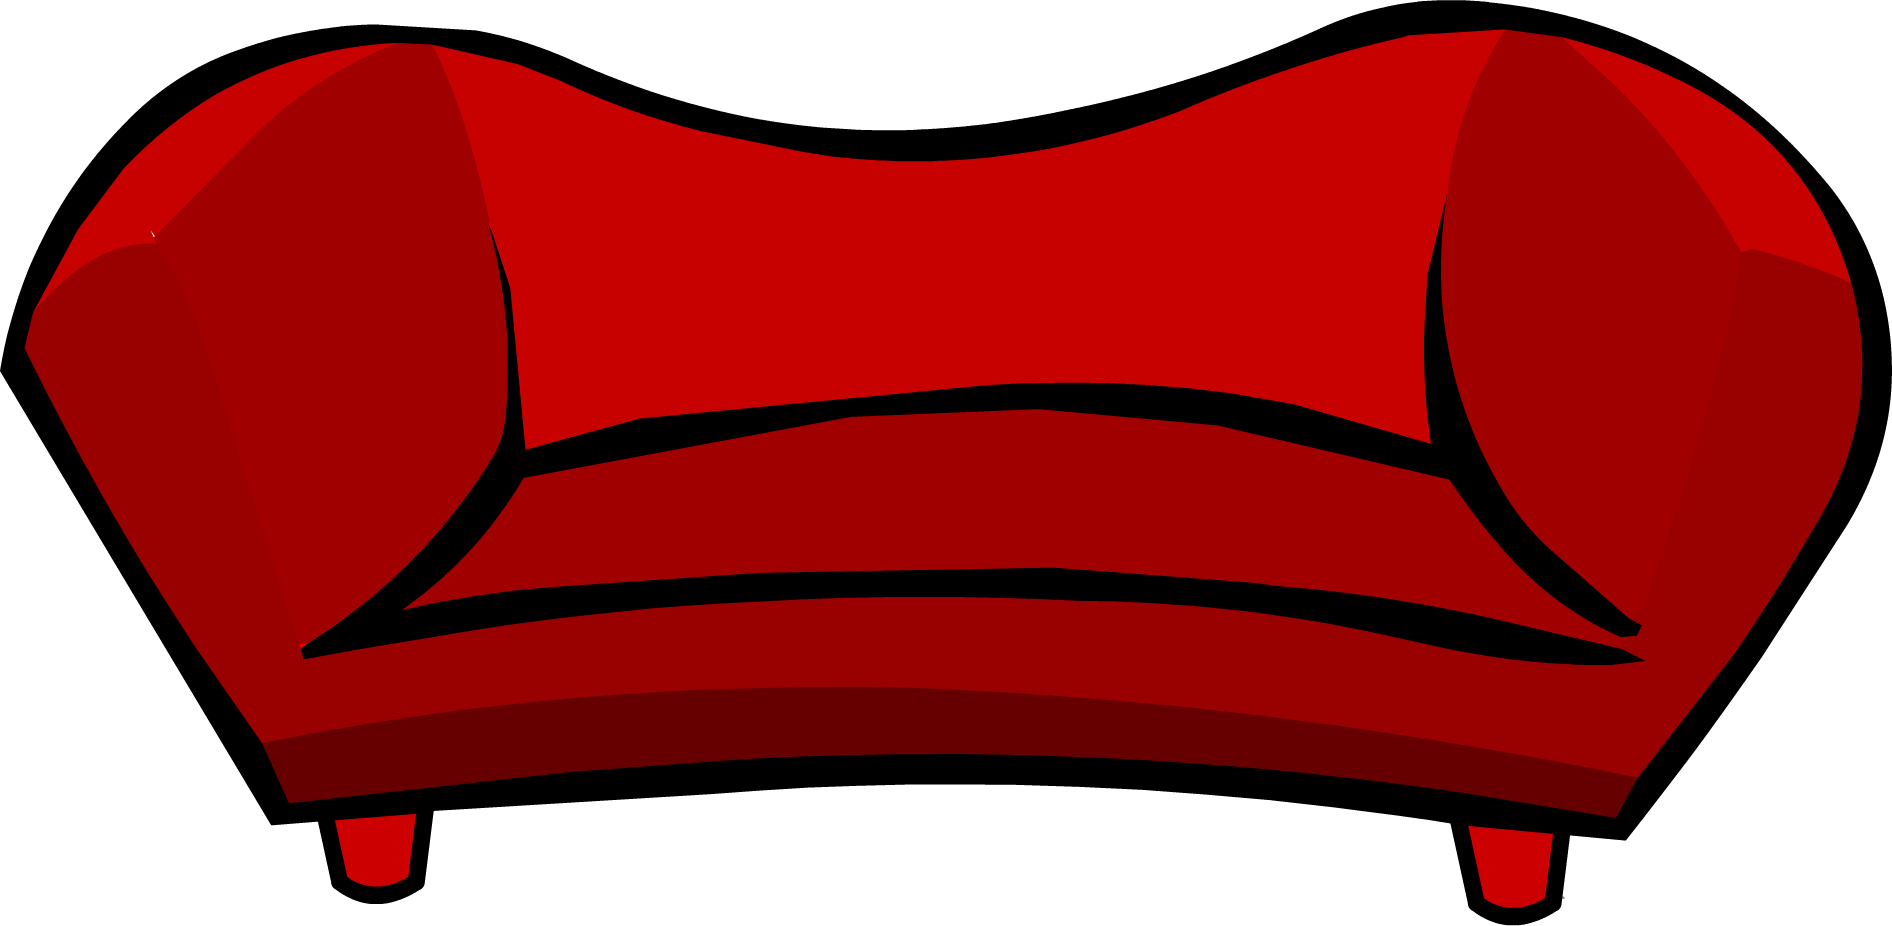 Image Red Plush Couch Icon Png Club Penguin Wiki